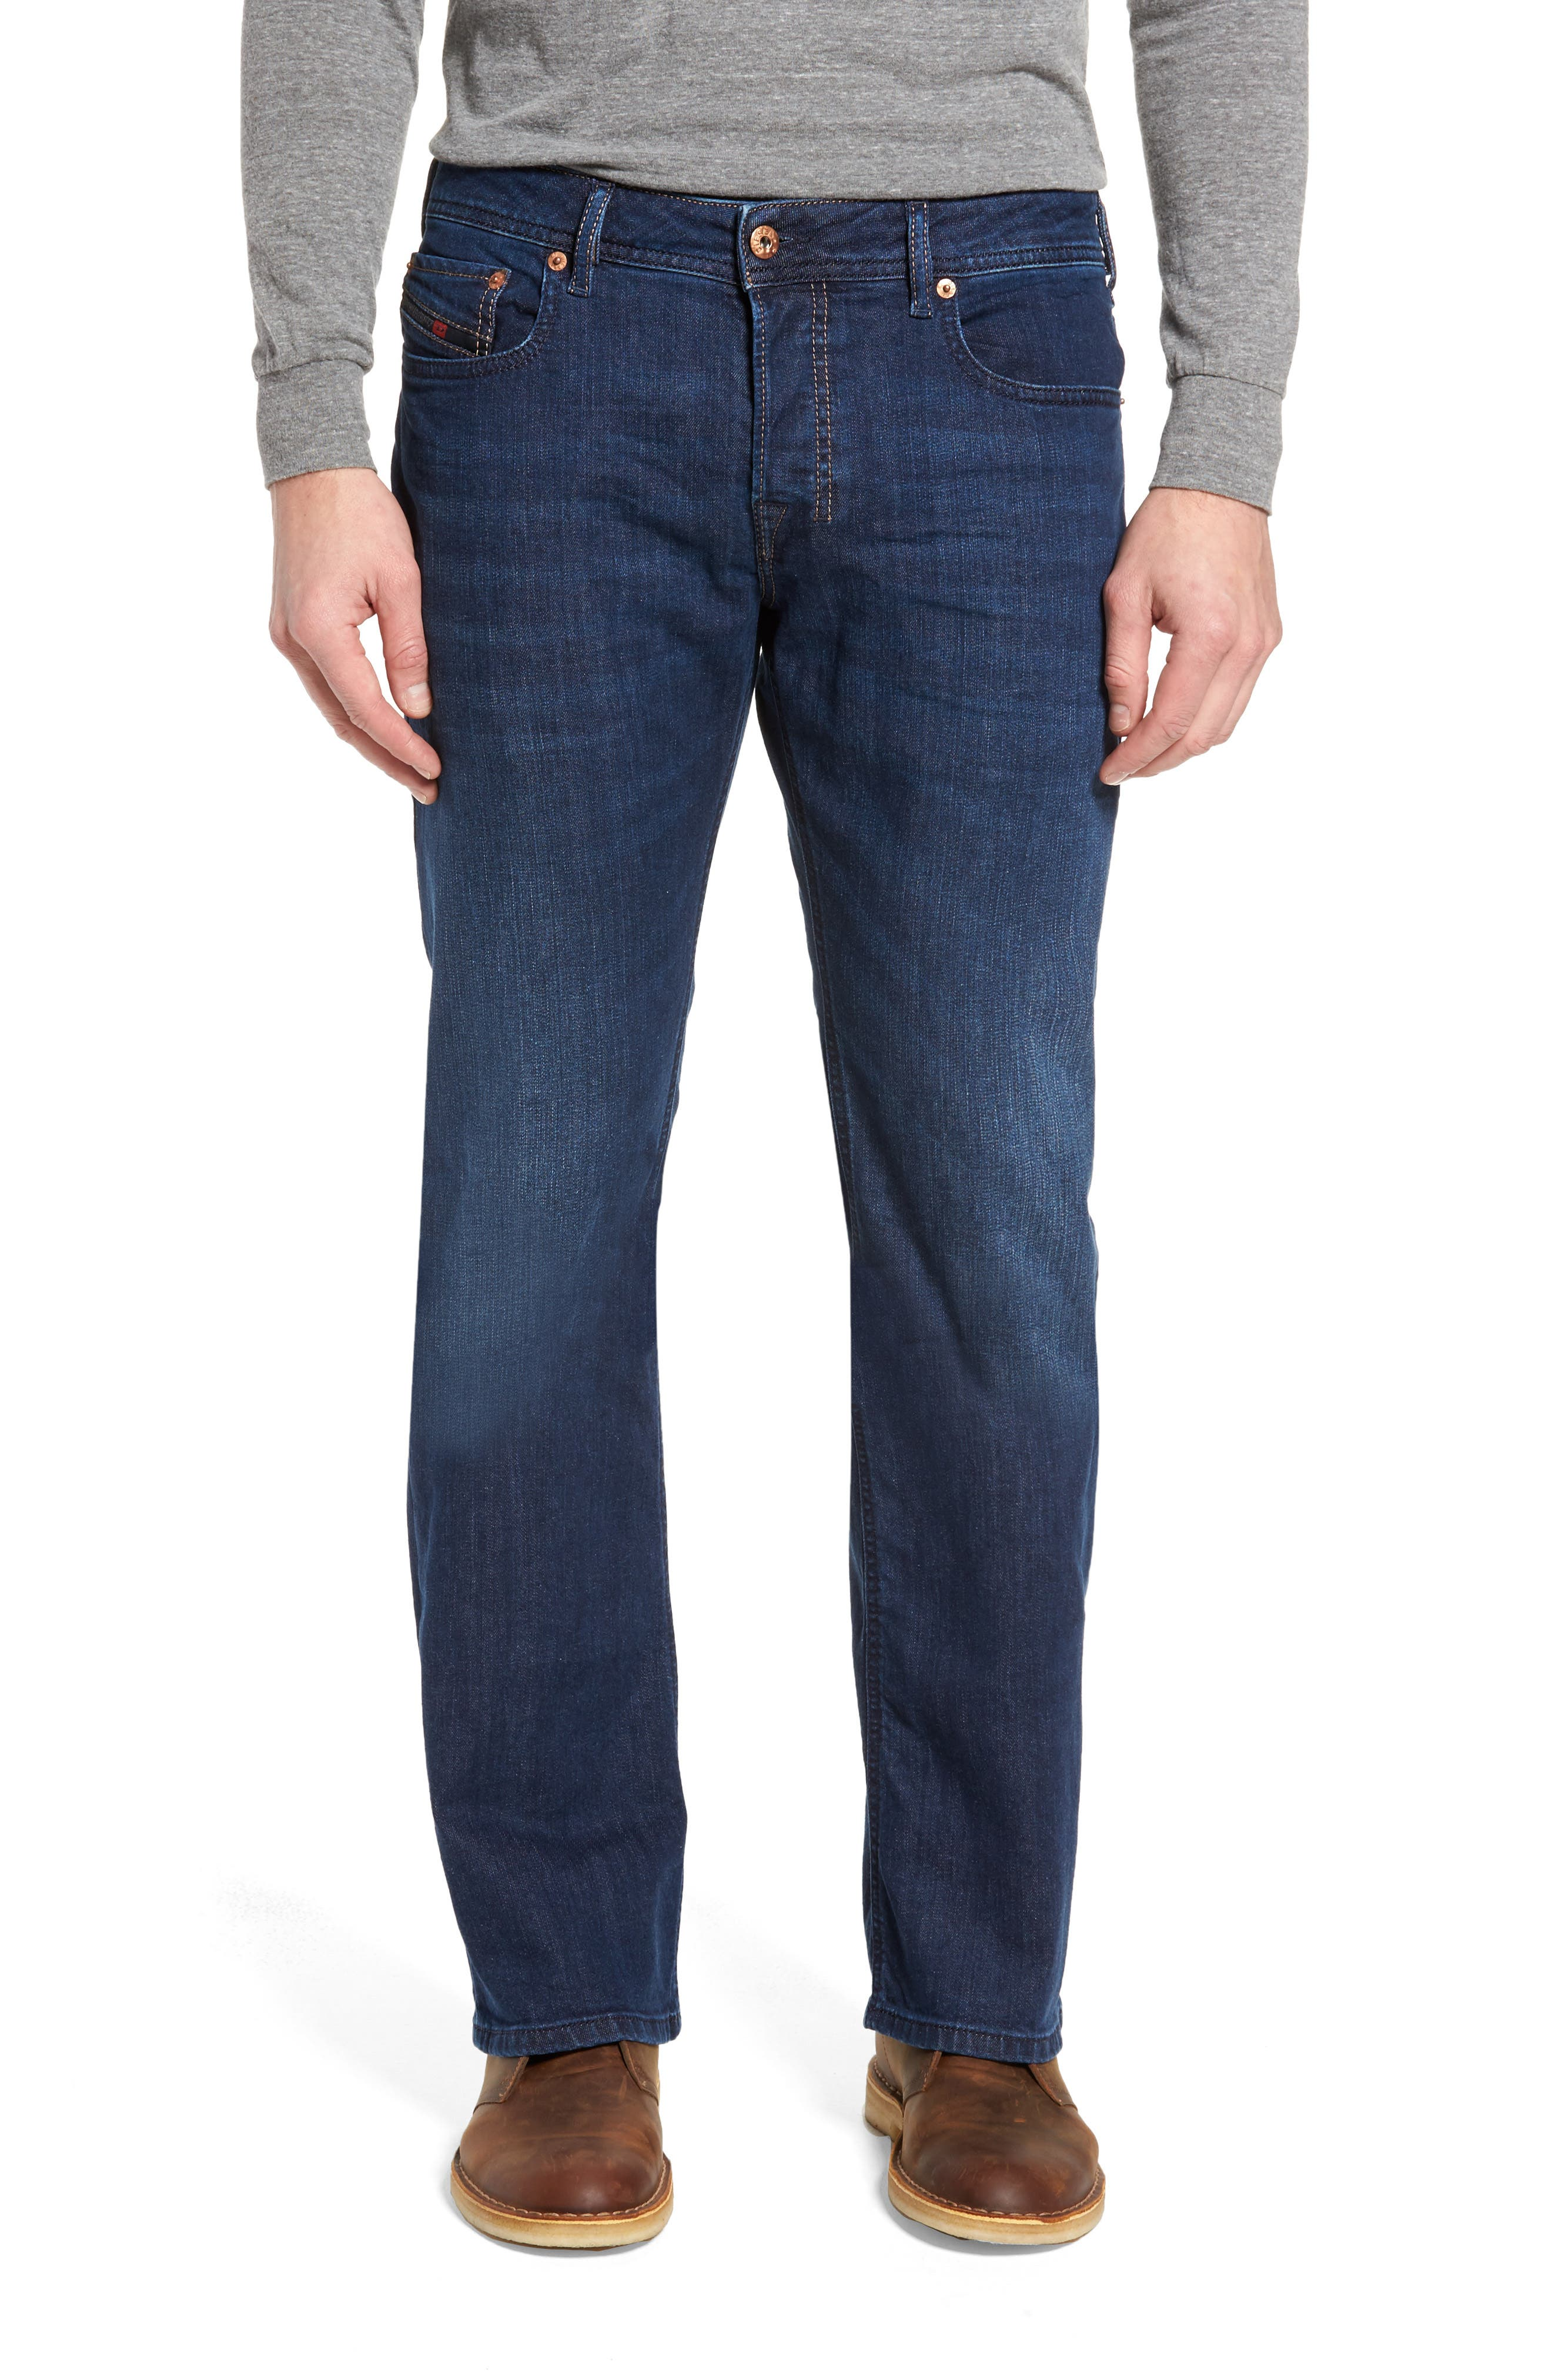 Zatiny Bootcut Jeans,                             Main thumbnail 1, color,                             084Nr